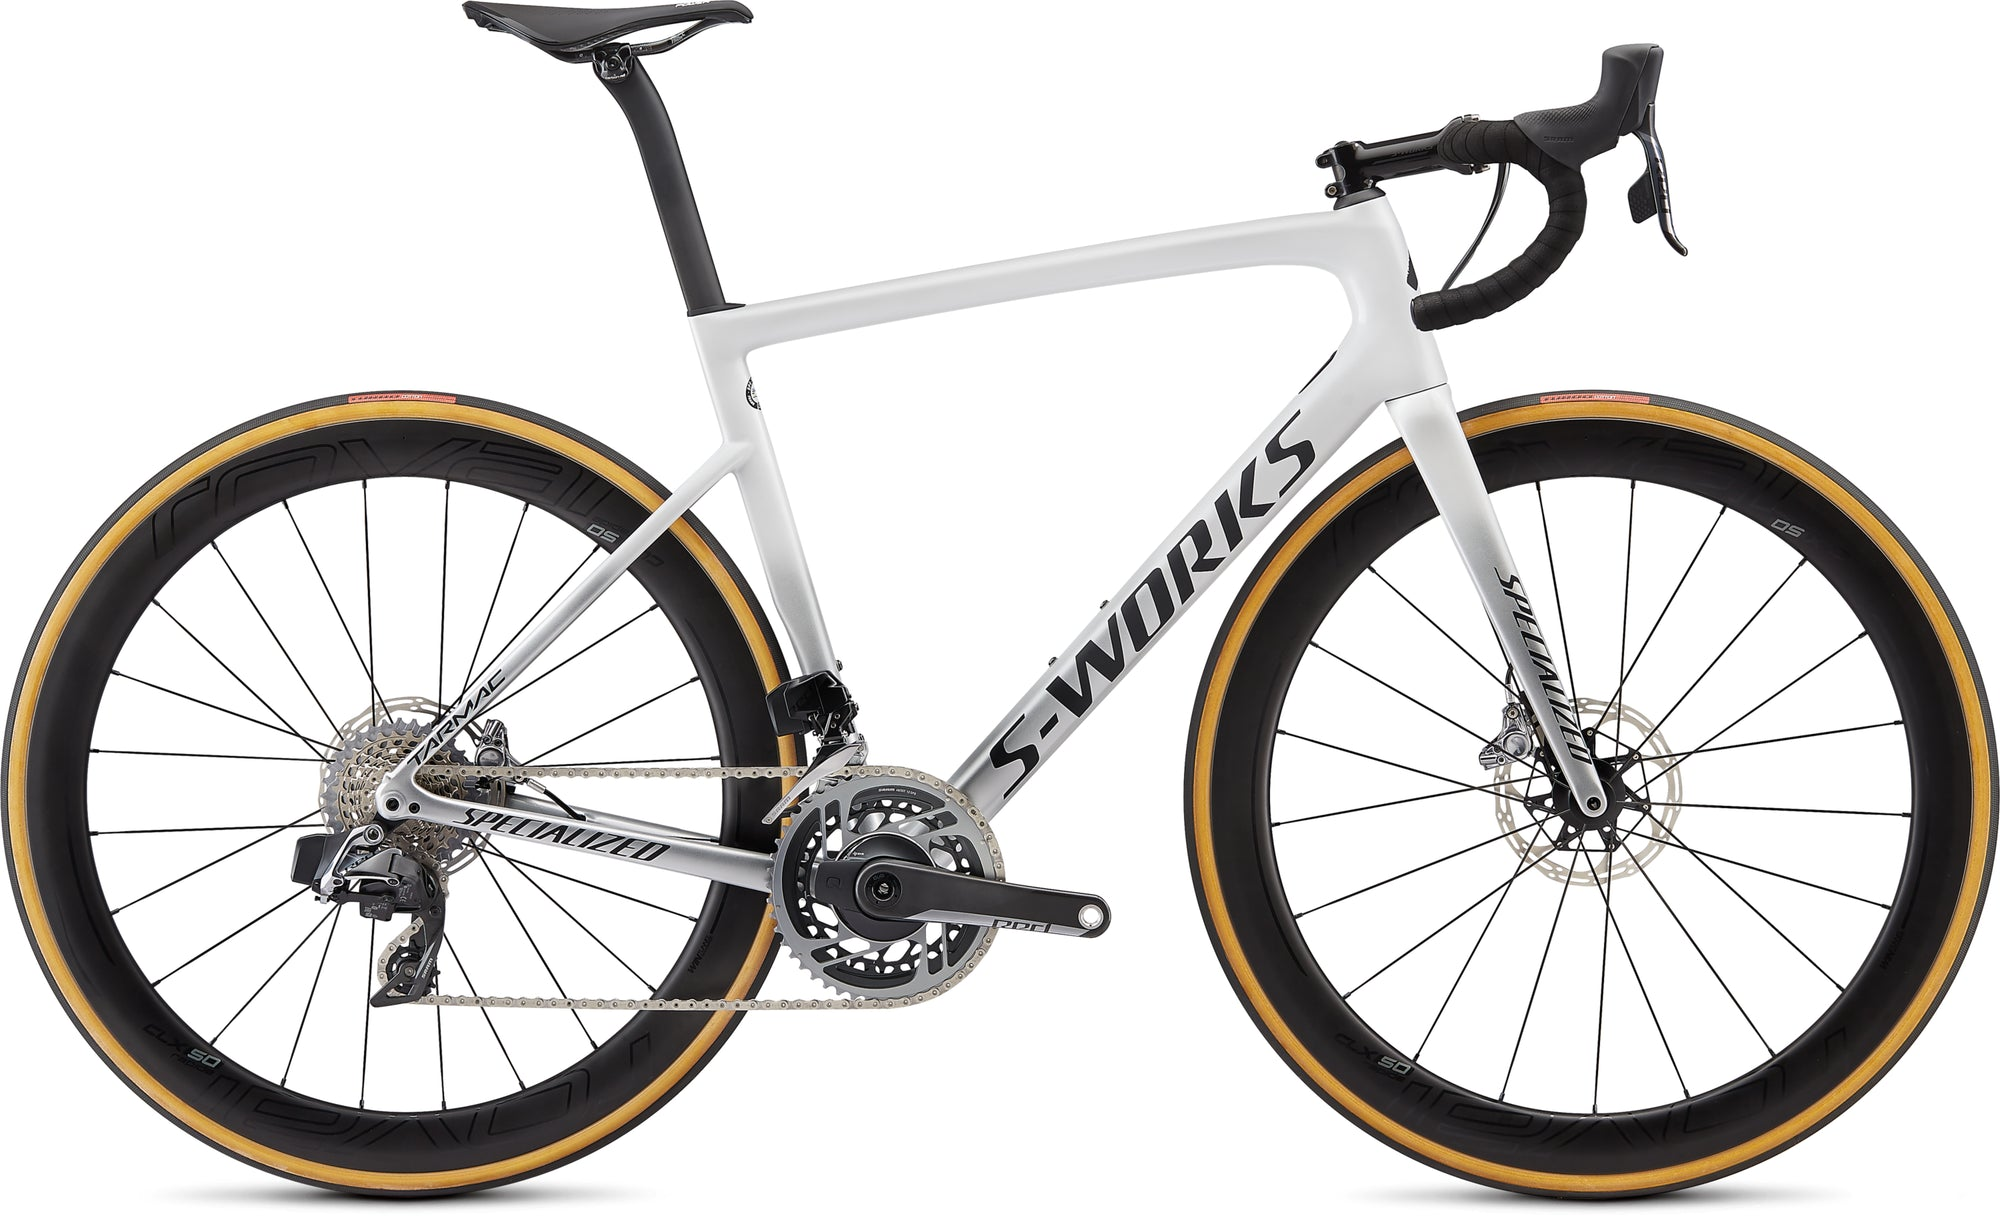 S-Works Tarmac SL6 - SRAM Red eTap AXS